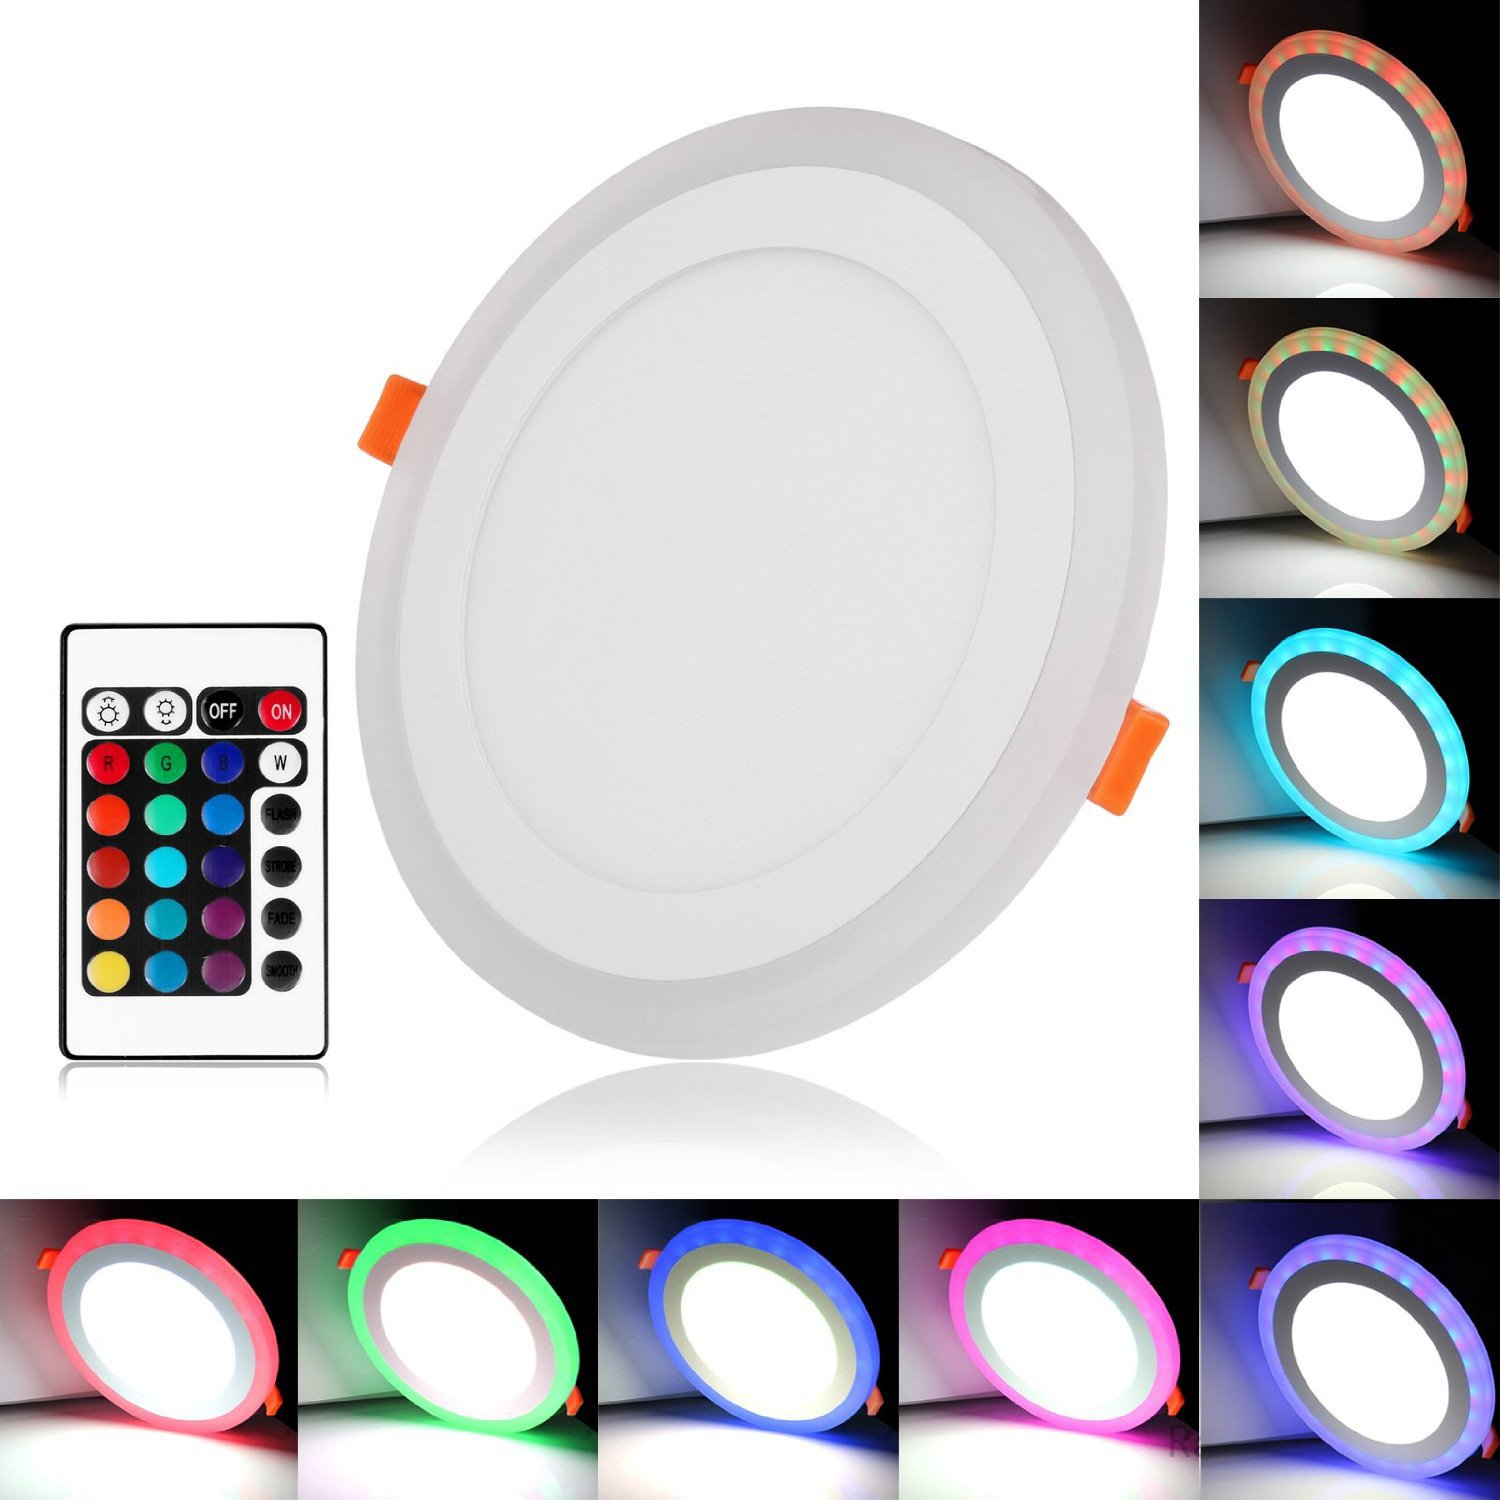 Ceiling Lights & Fans Lovely Recessed Color Changing Rgb Panel Lamp 3w Led Ceiling Down Light With Remote Control Home Family Day Decoration Sucking Lamp Ceiling Lights